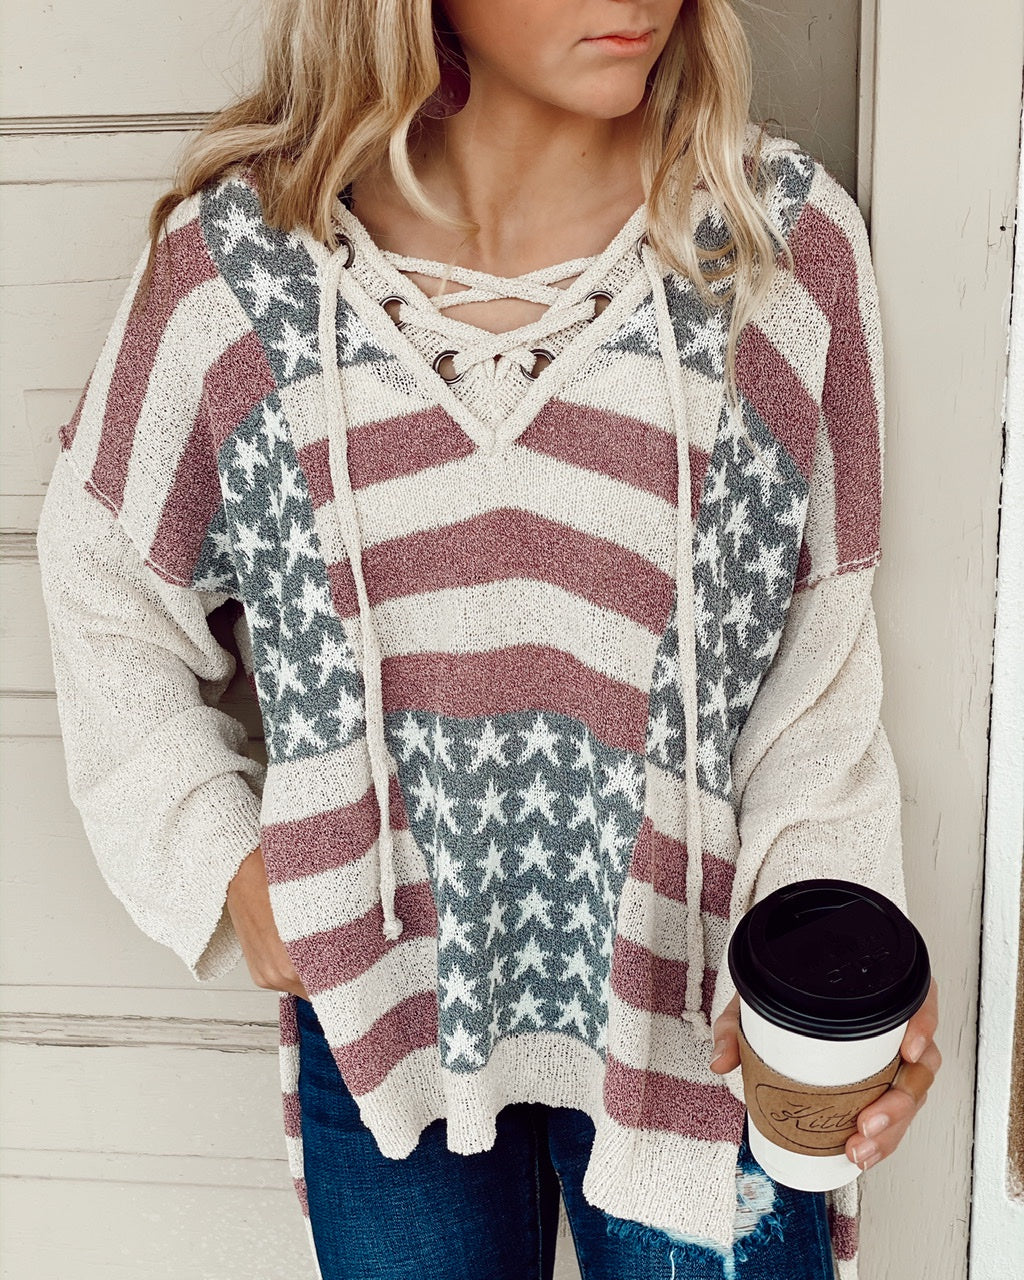 Thin Knit Long Slv Patriotic Sweater w Criss Cross Tie at Neck and Hood